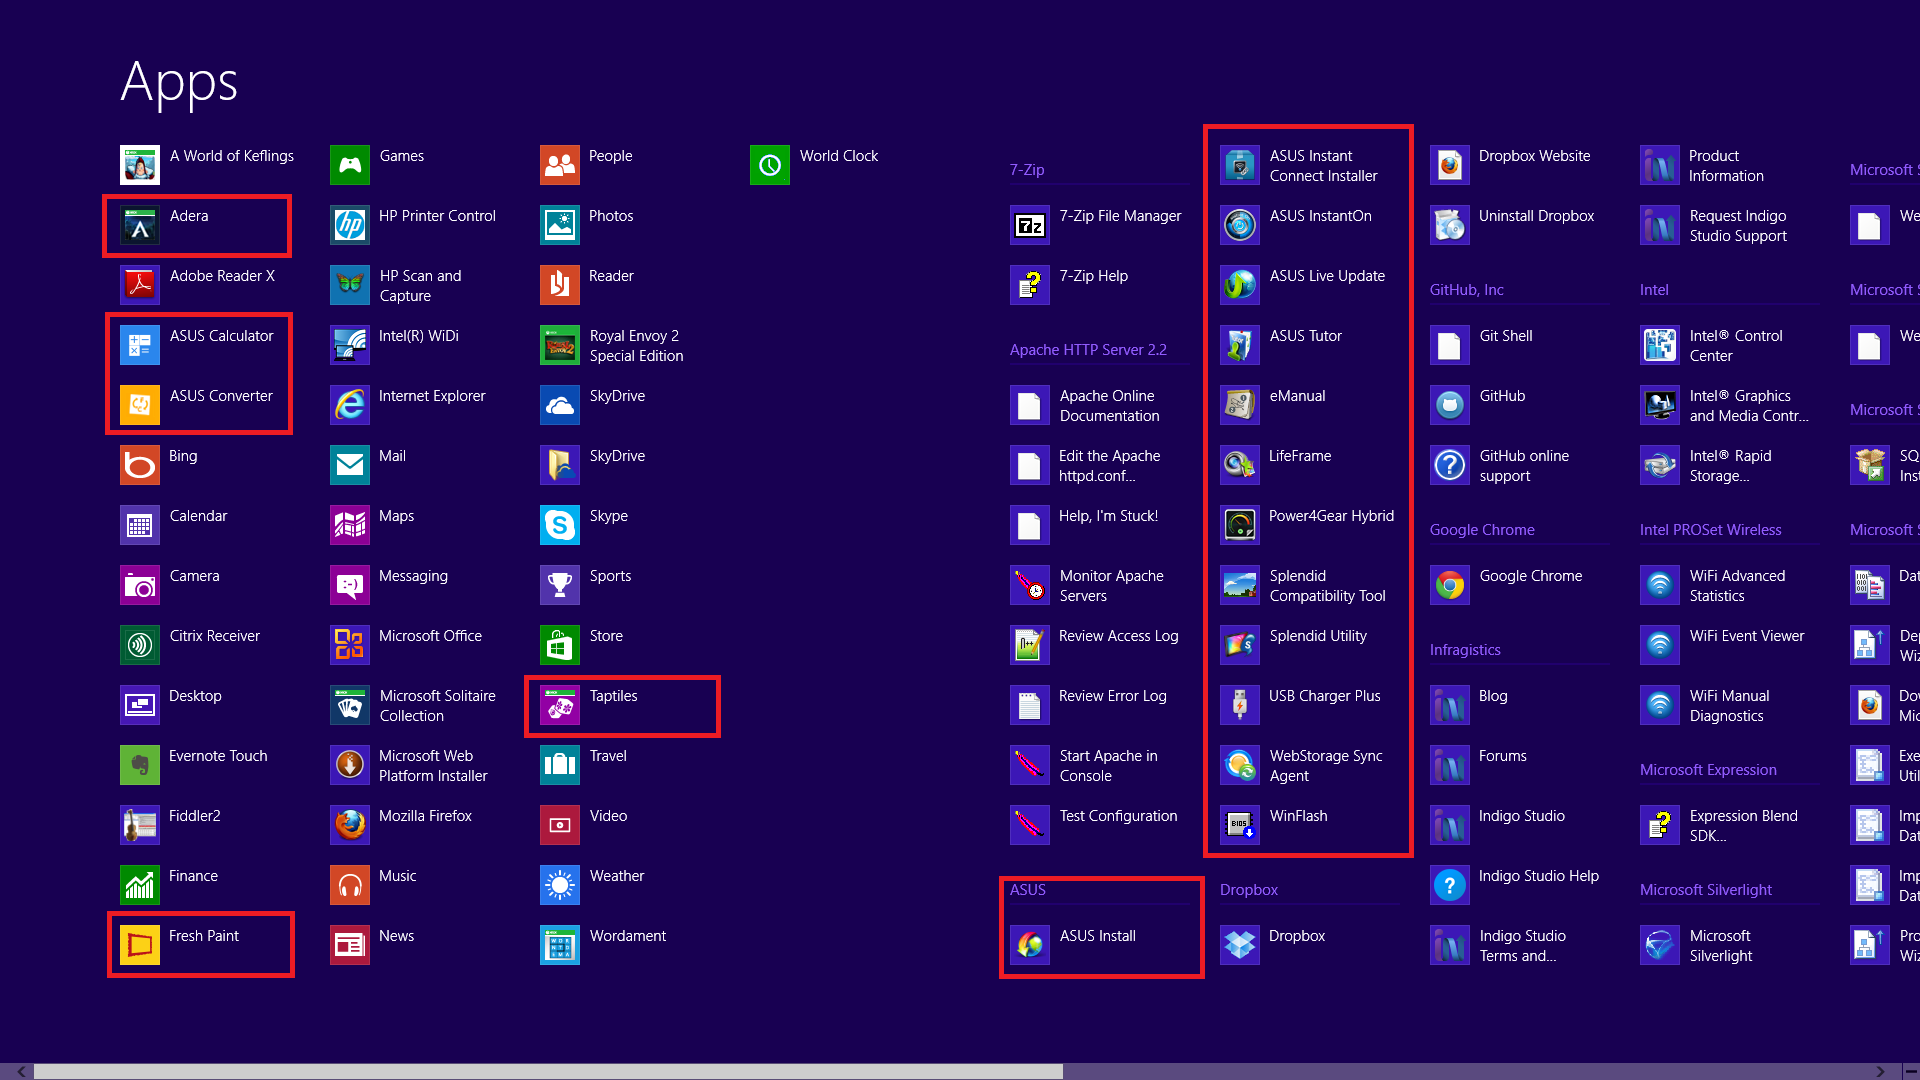 201305-Windows8-AllApps1